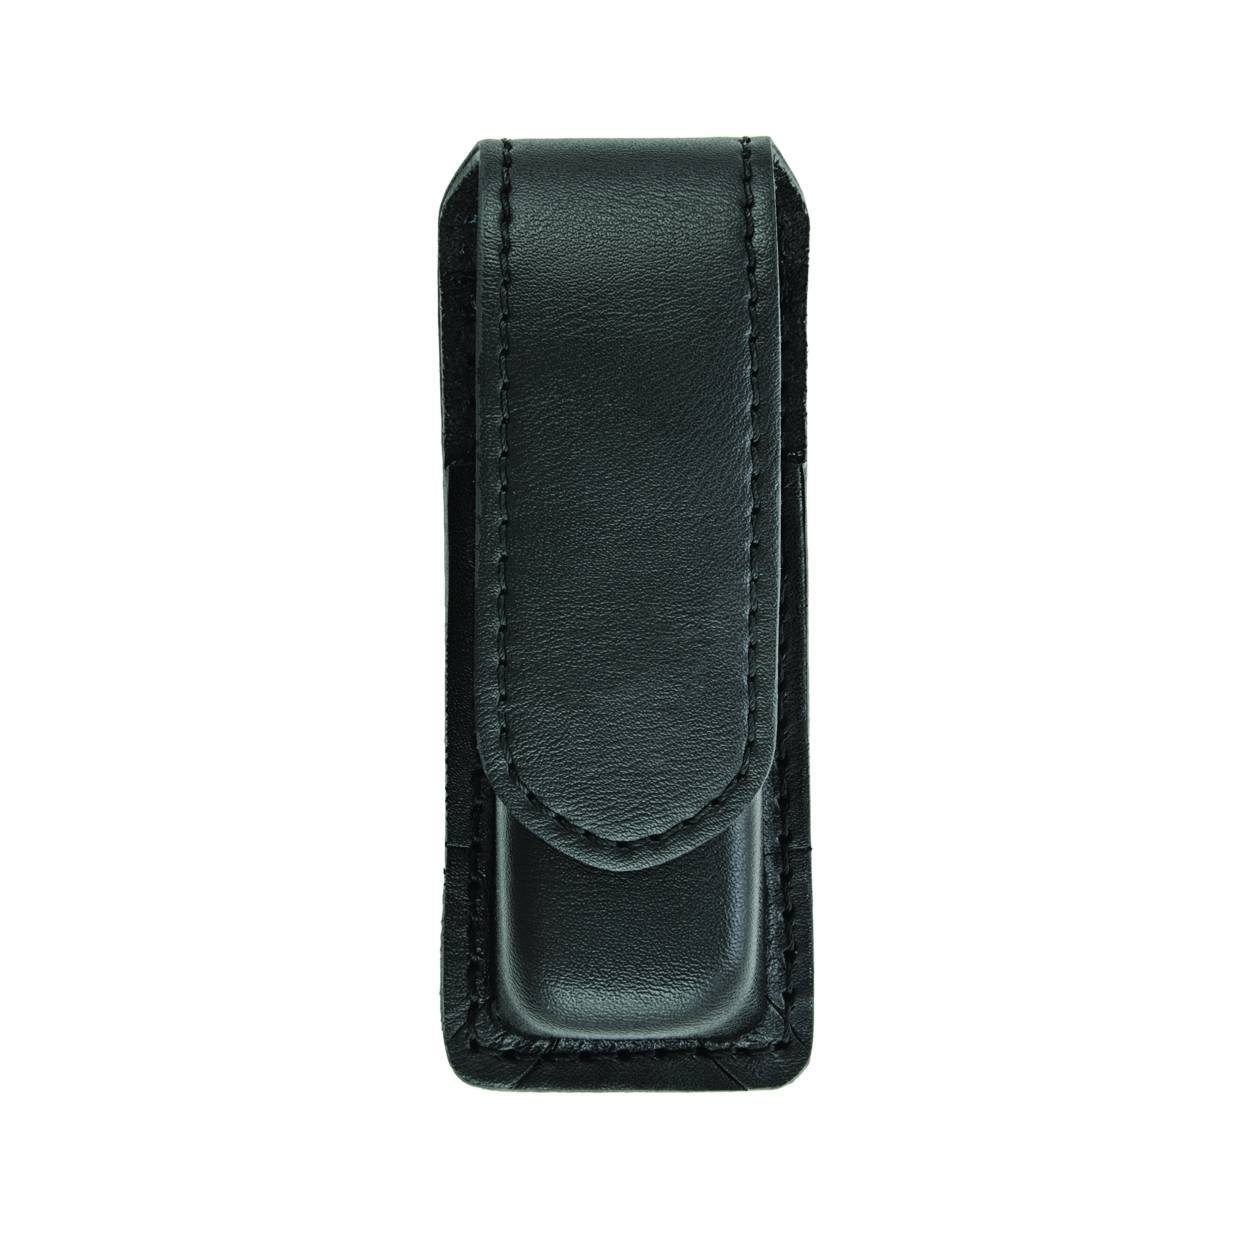 Single Magazine (or Knife) Case, Medium, AirTek, Smooth, Hidden Snap-